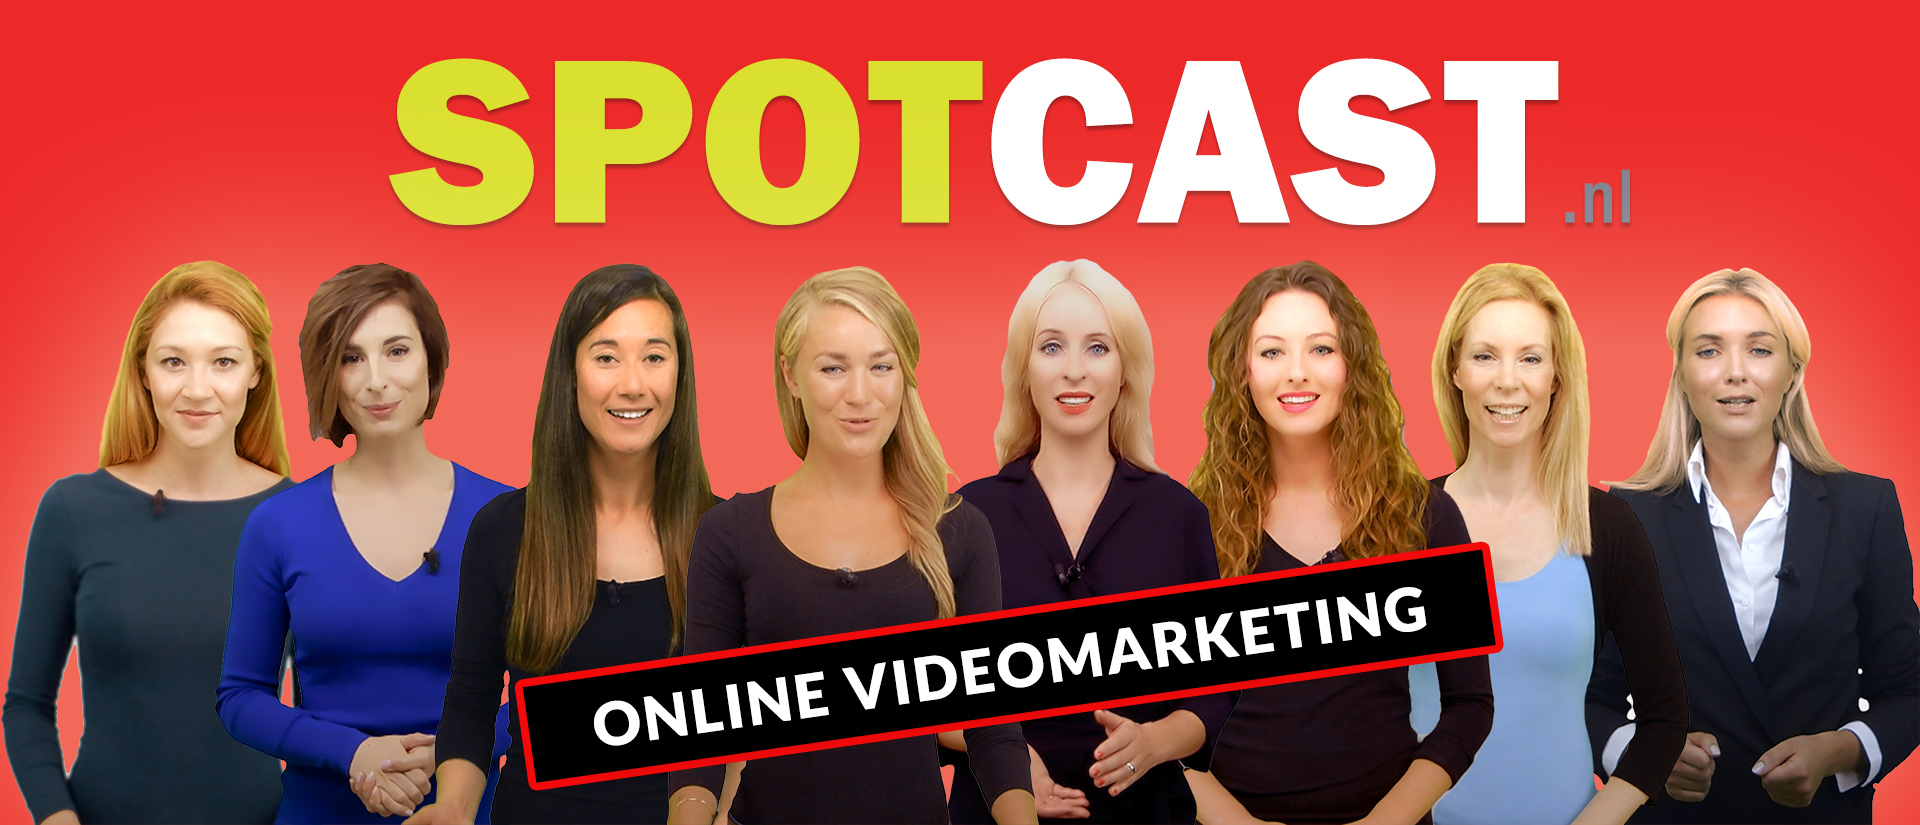 Over SpotCast Online videomarketing